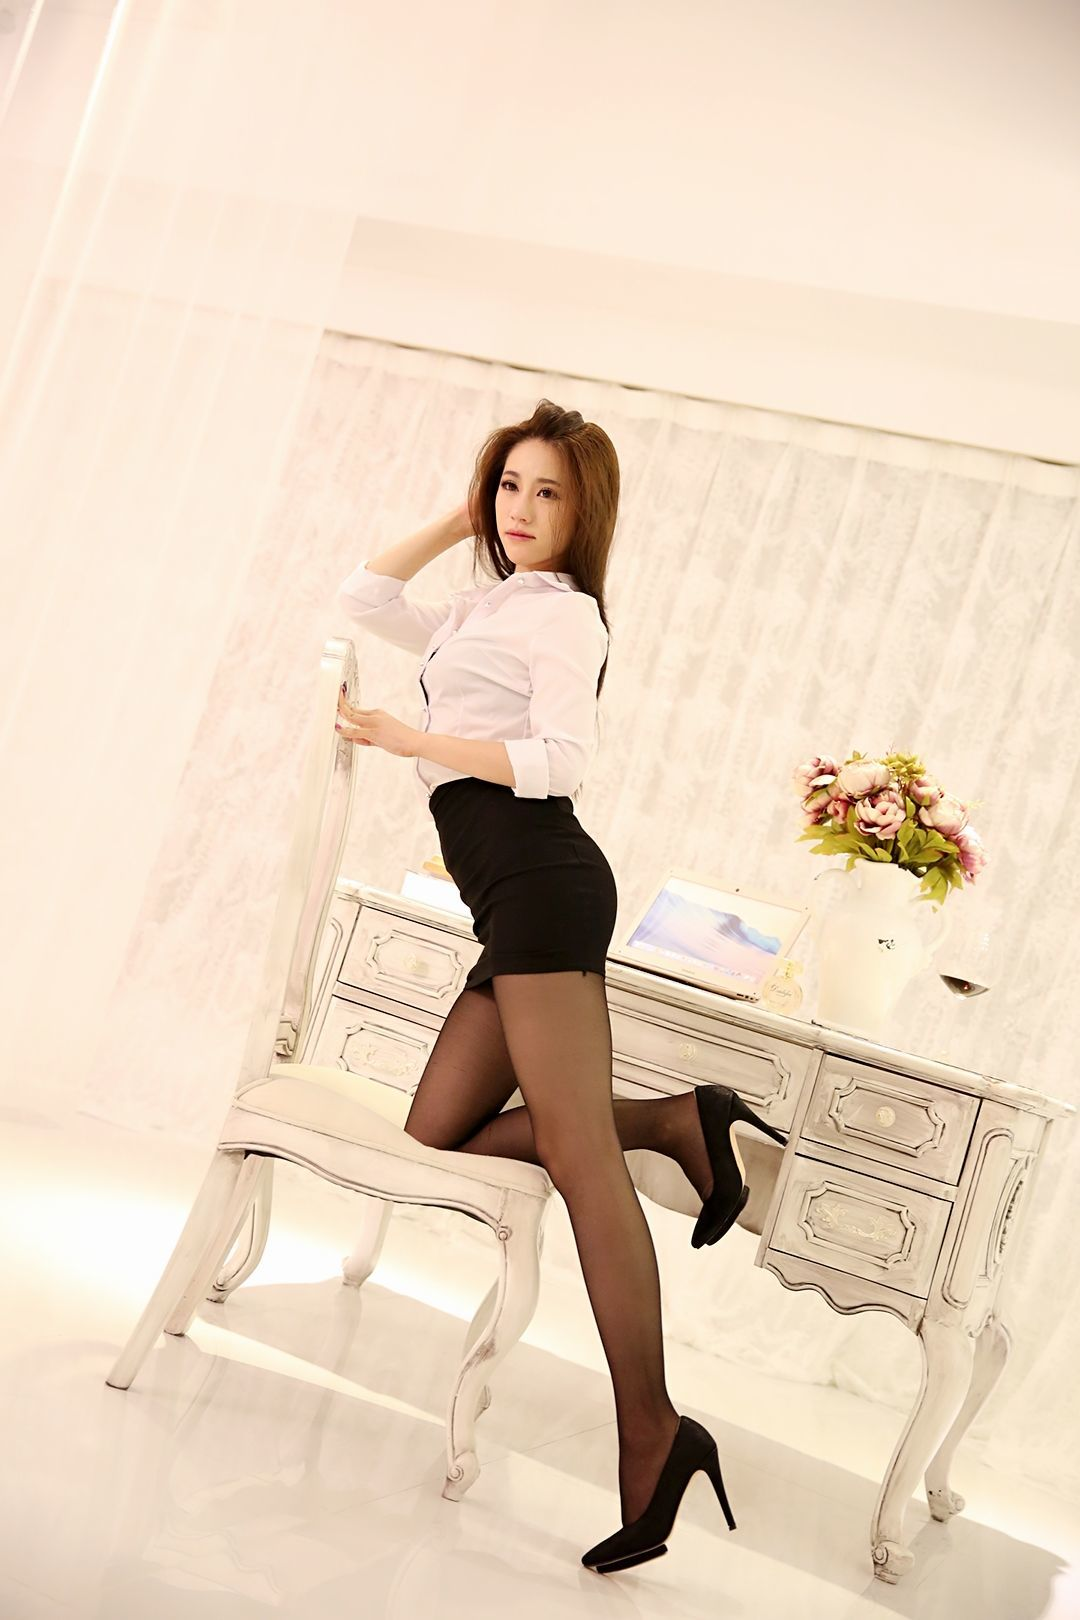 My New Secretary Seducing Me With Tight Skirt Pantyhose